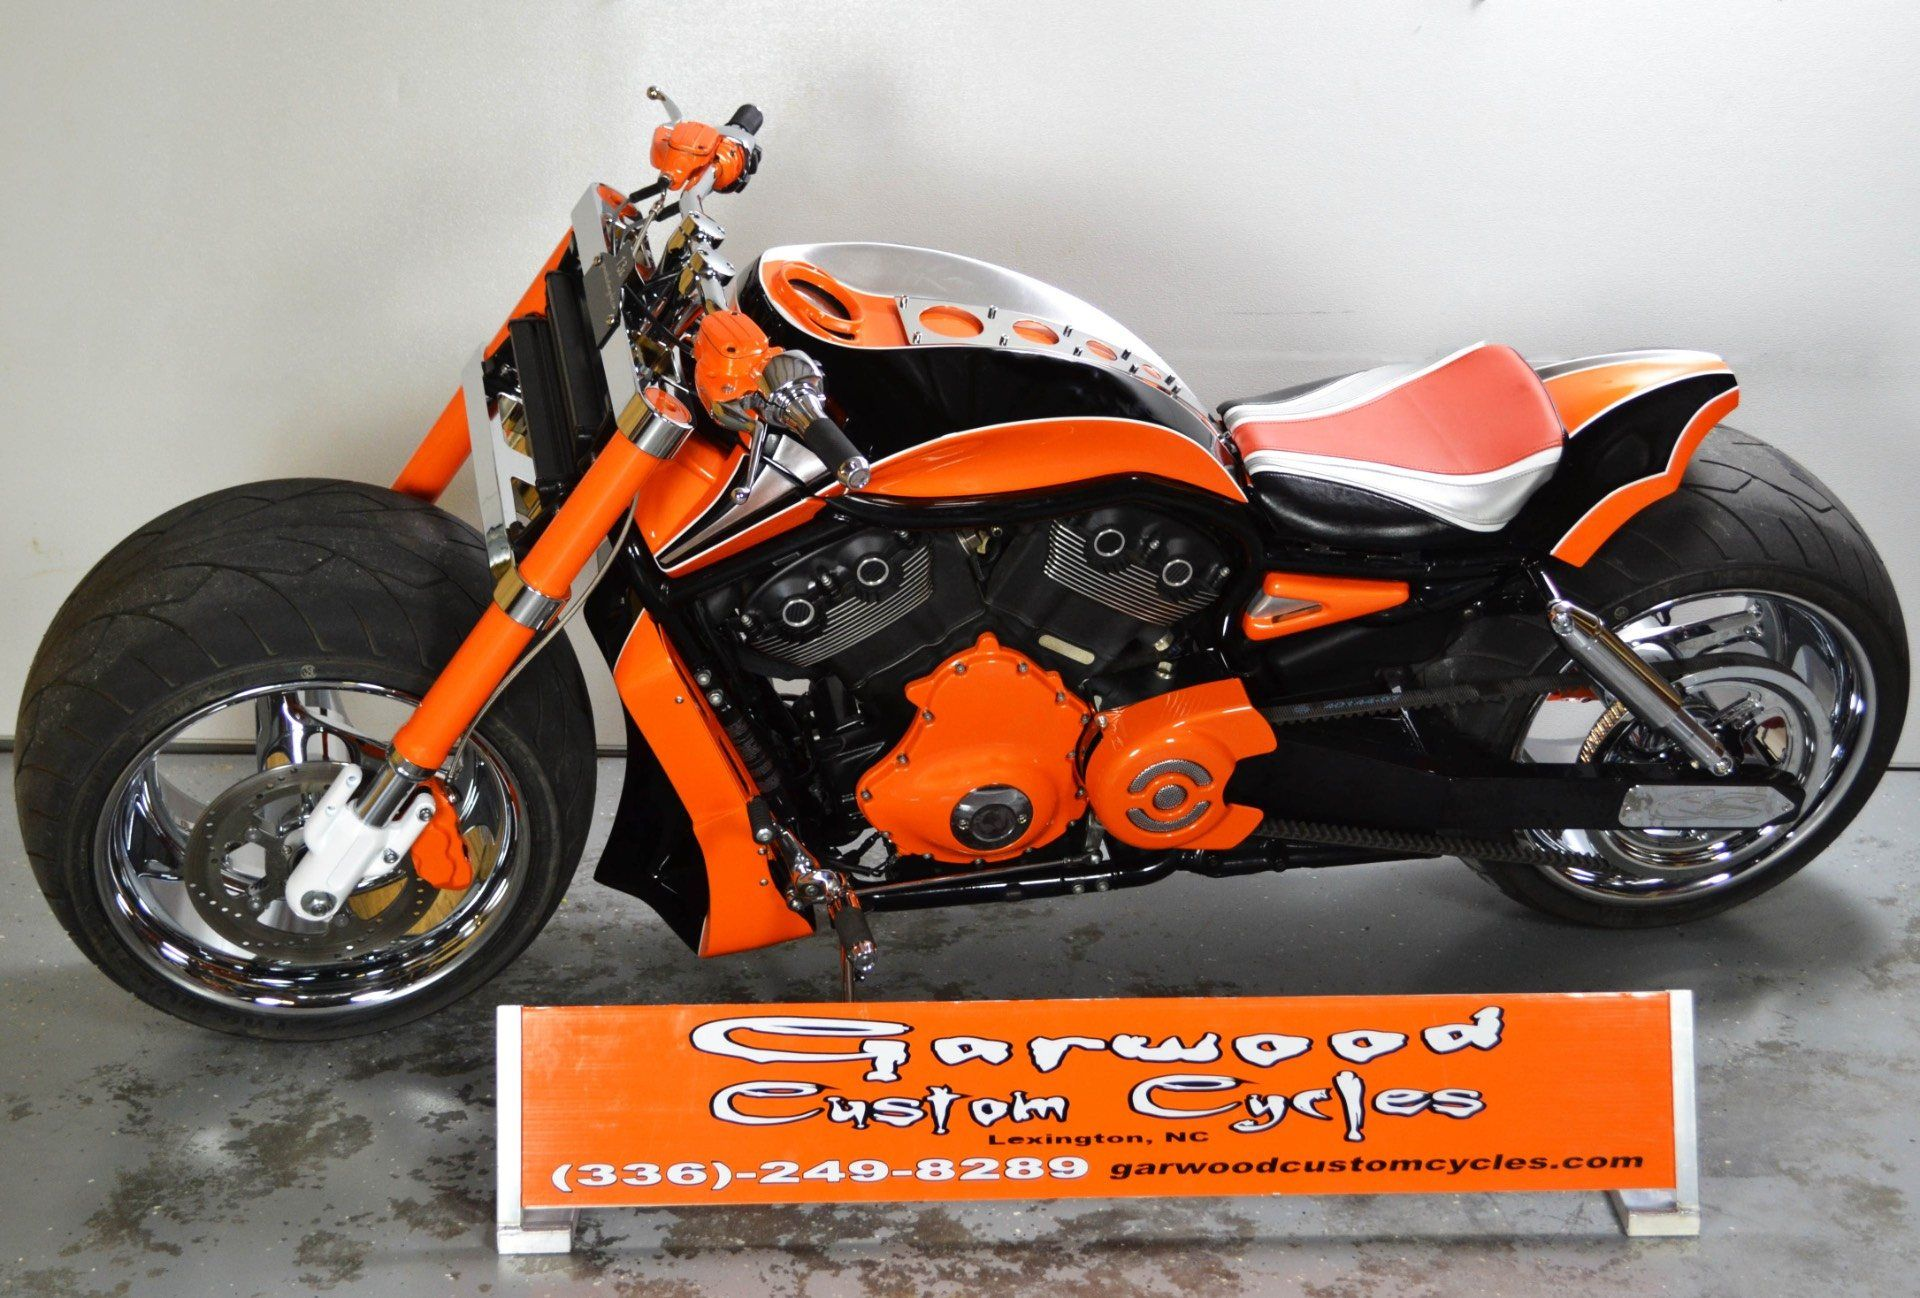 2012 Harley Davidson V-ROD in Lexington, North Carolina - Photo 2